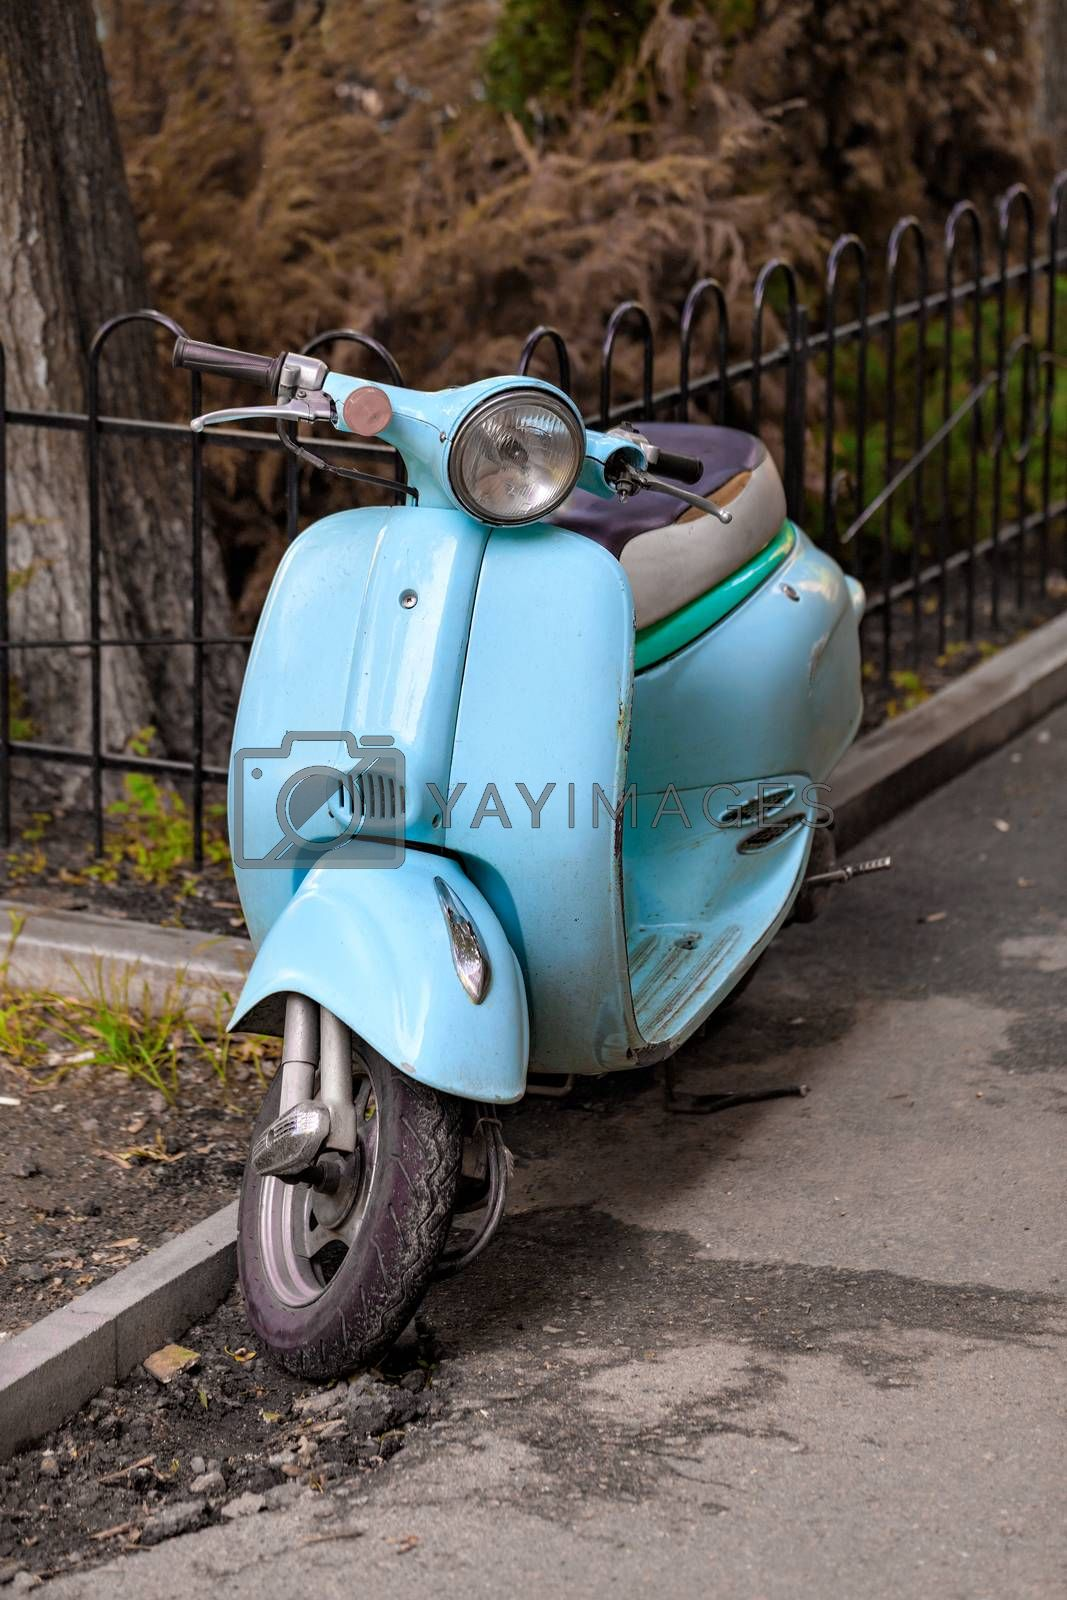 Light blue retro scooter parked on the old street of the city. Vintage style. Copy space.